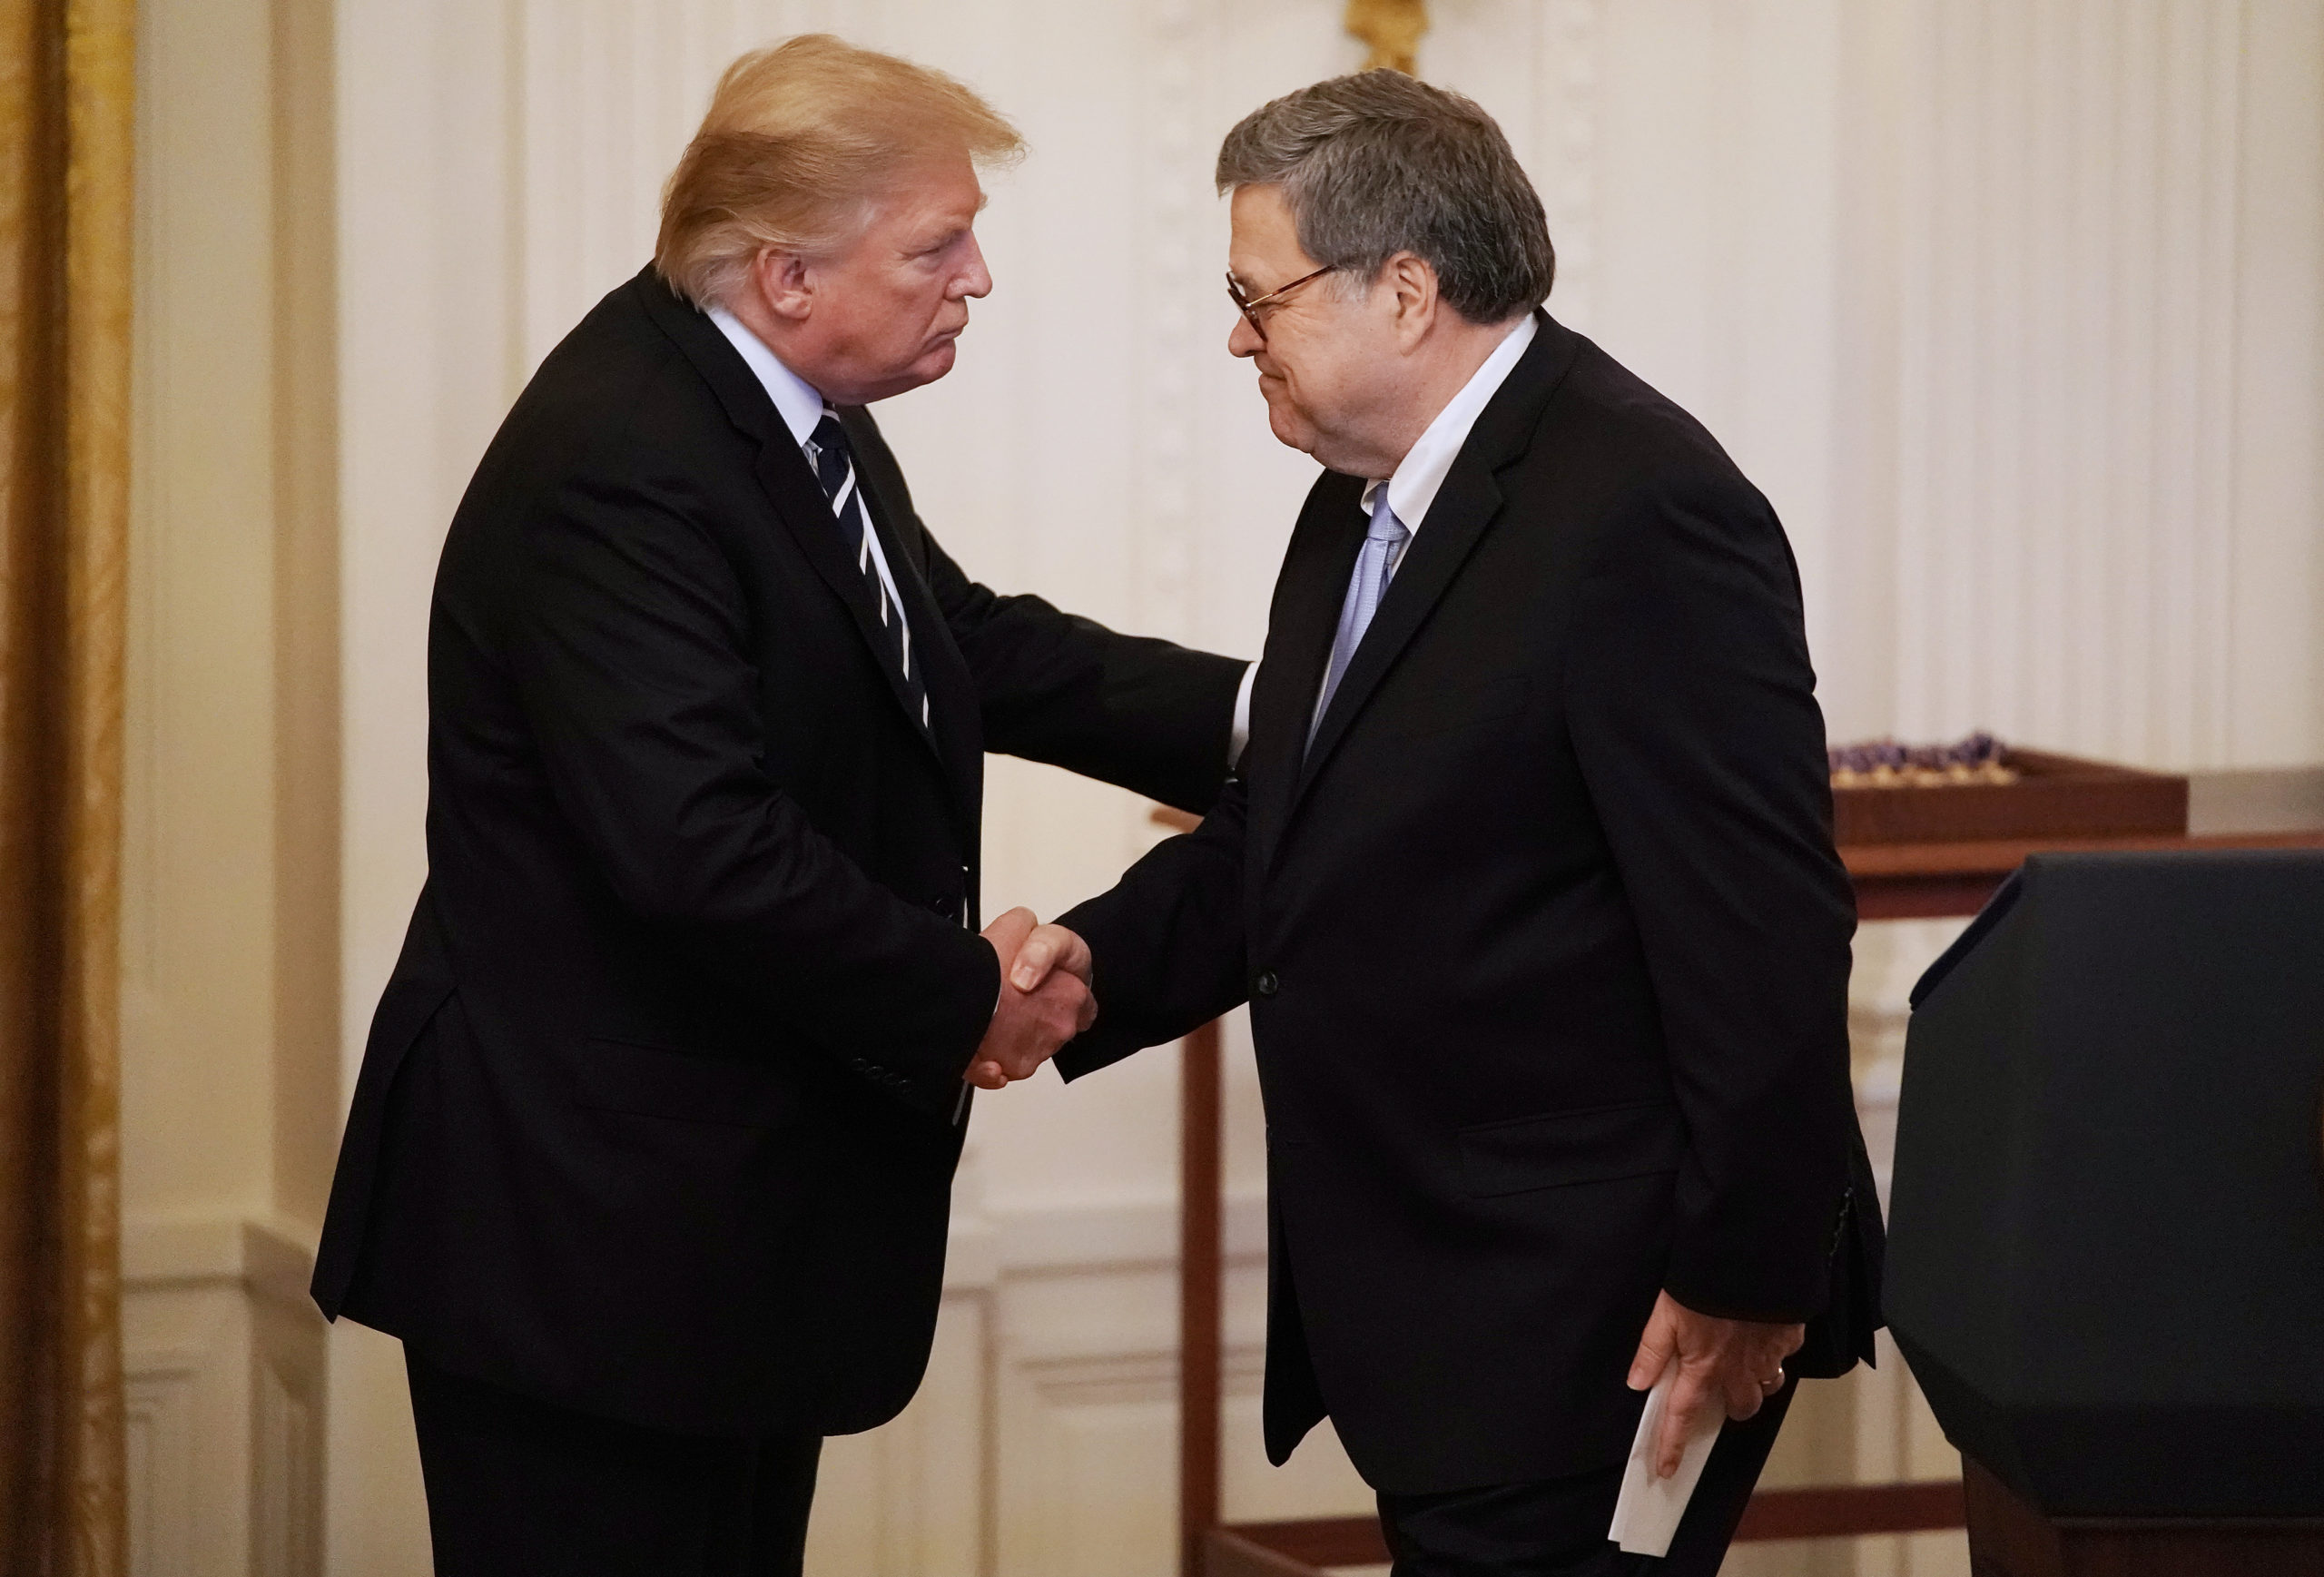 WASHINGTON, DC - MAY 22: U.S. President Donald Trump (L) shakes hands with Attorney General William Barr before presenting the Public Safety Officer Medal of Valor during a ceremony in the East Room of the White House May 22, 2019 in Washington, DC. Comparable to the military's Medal of Honor, the Medal of Valor was established in 2000 by President Bill Clinton. (Photo by Chip Somodevilla/Getty Images)